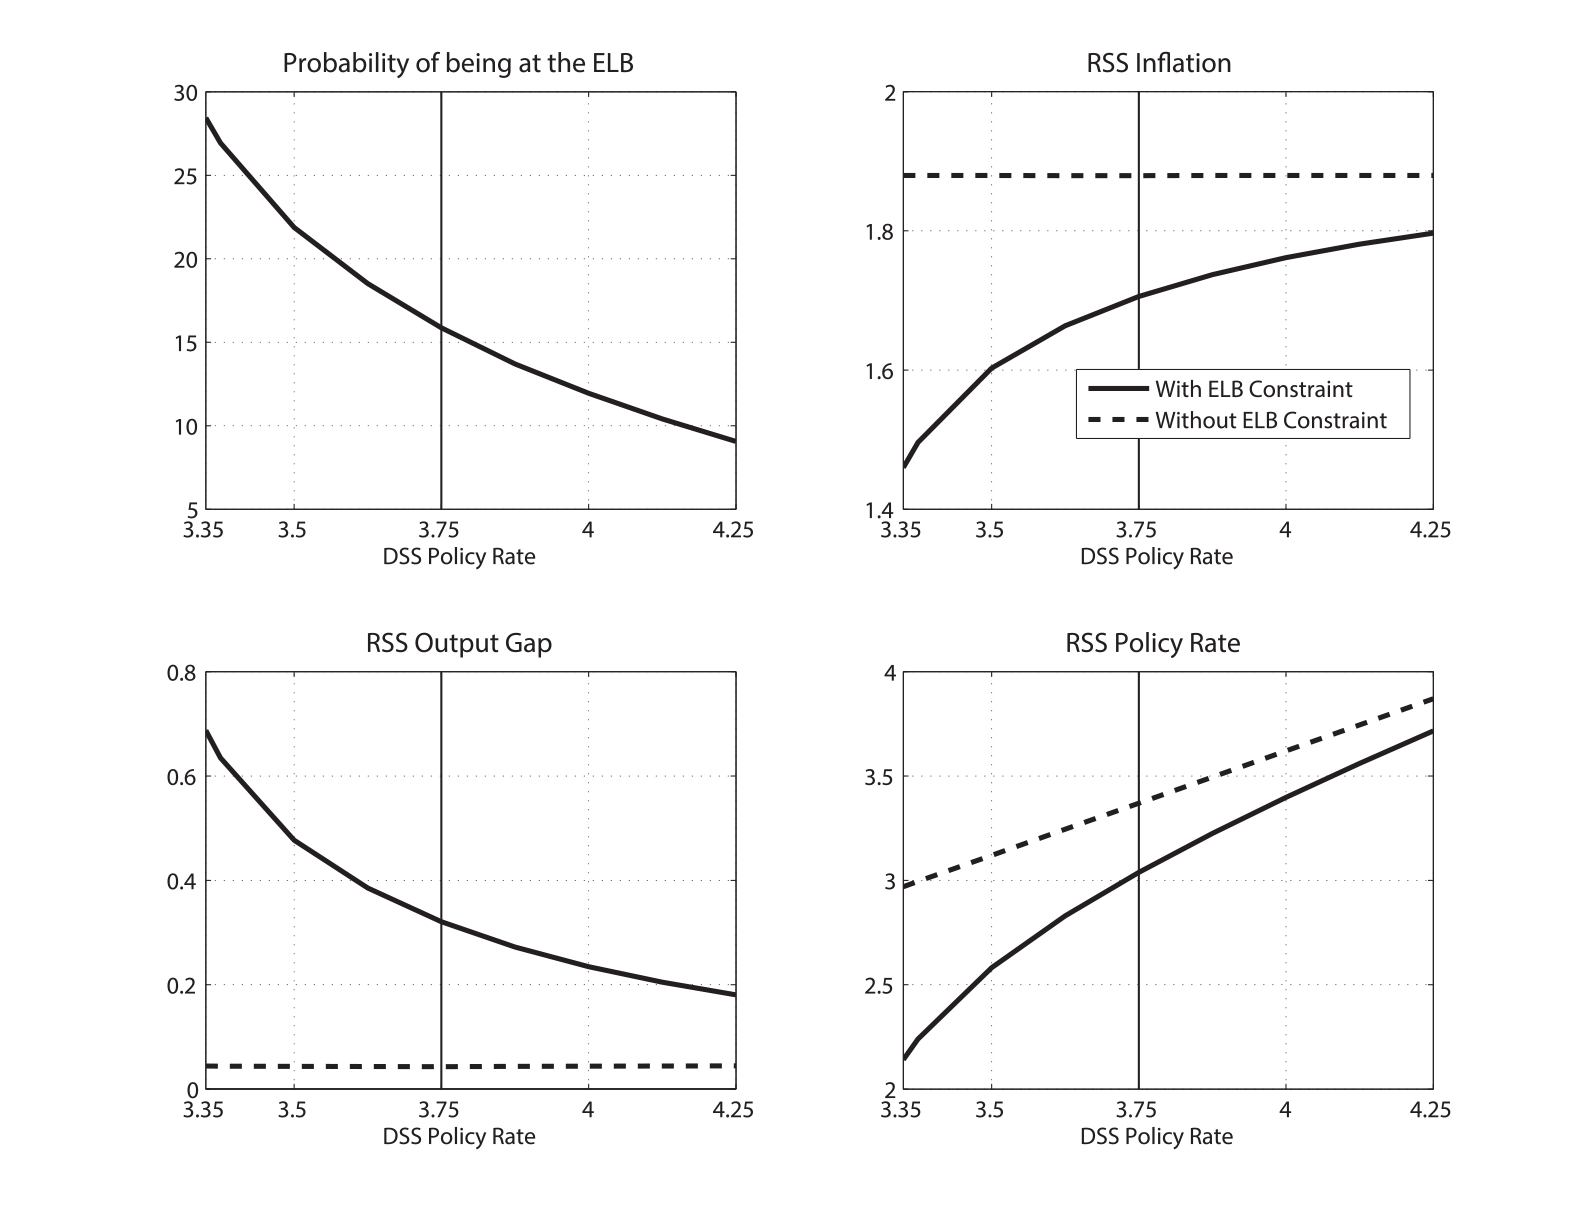 Figure 3: Long-Run Policy Rate and Deflationary Bias. See accessible link for data.